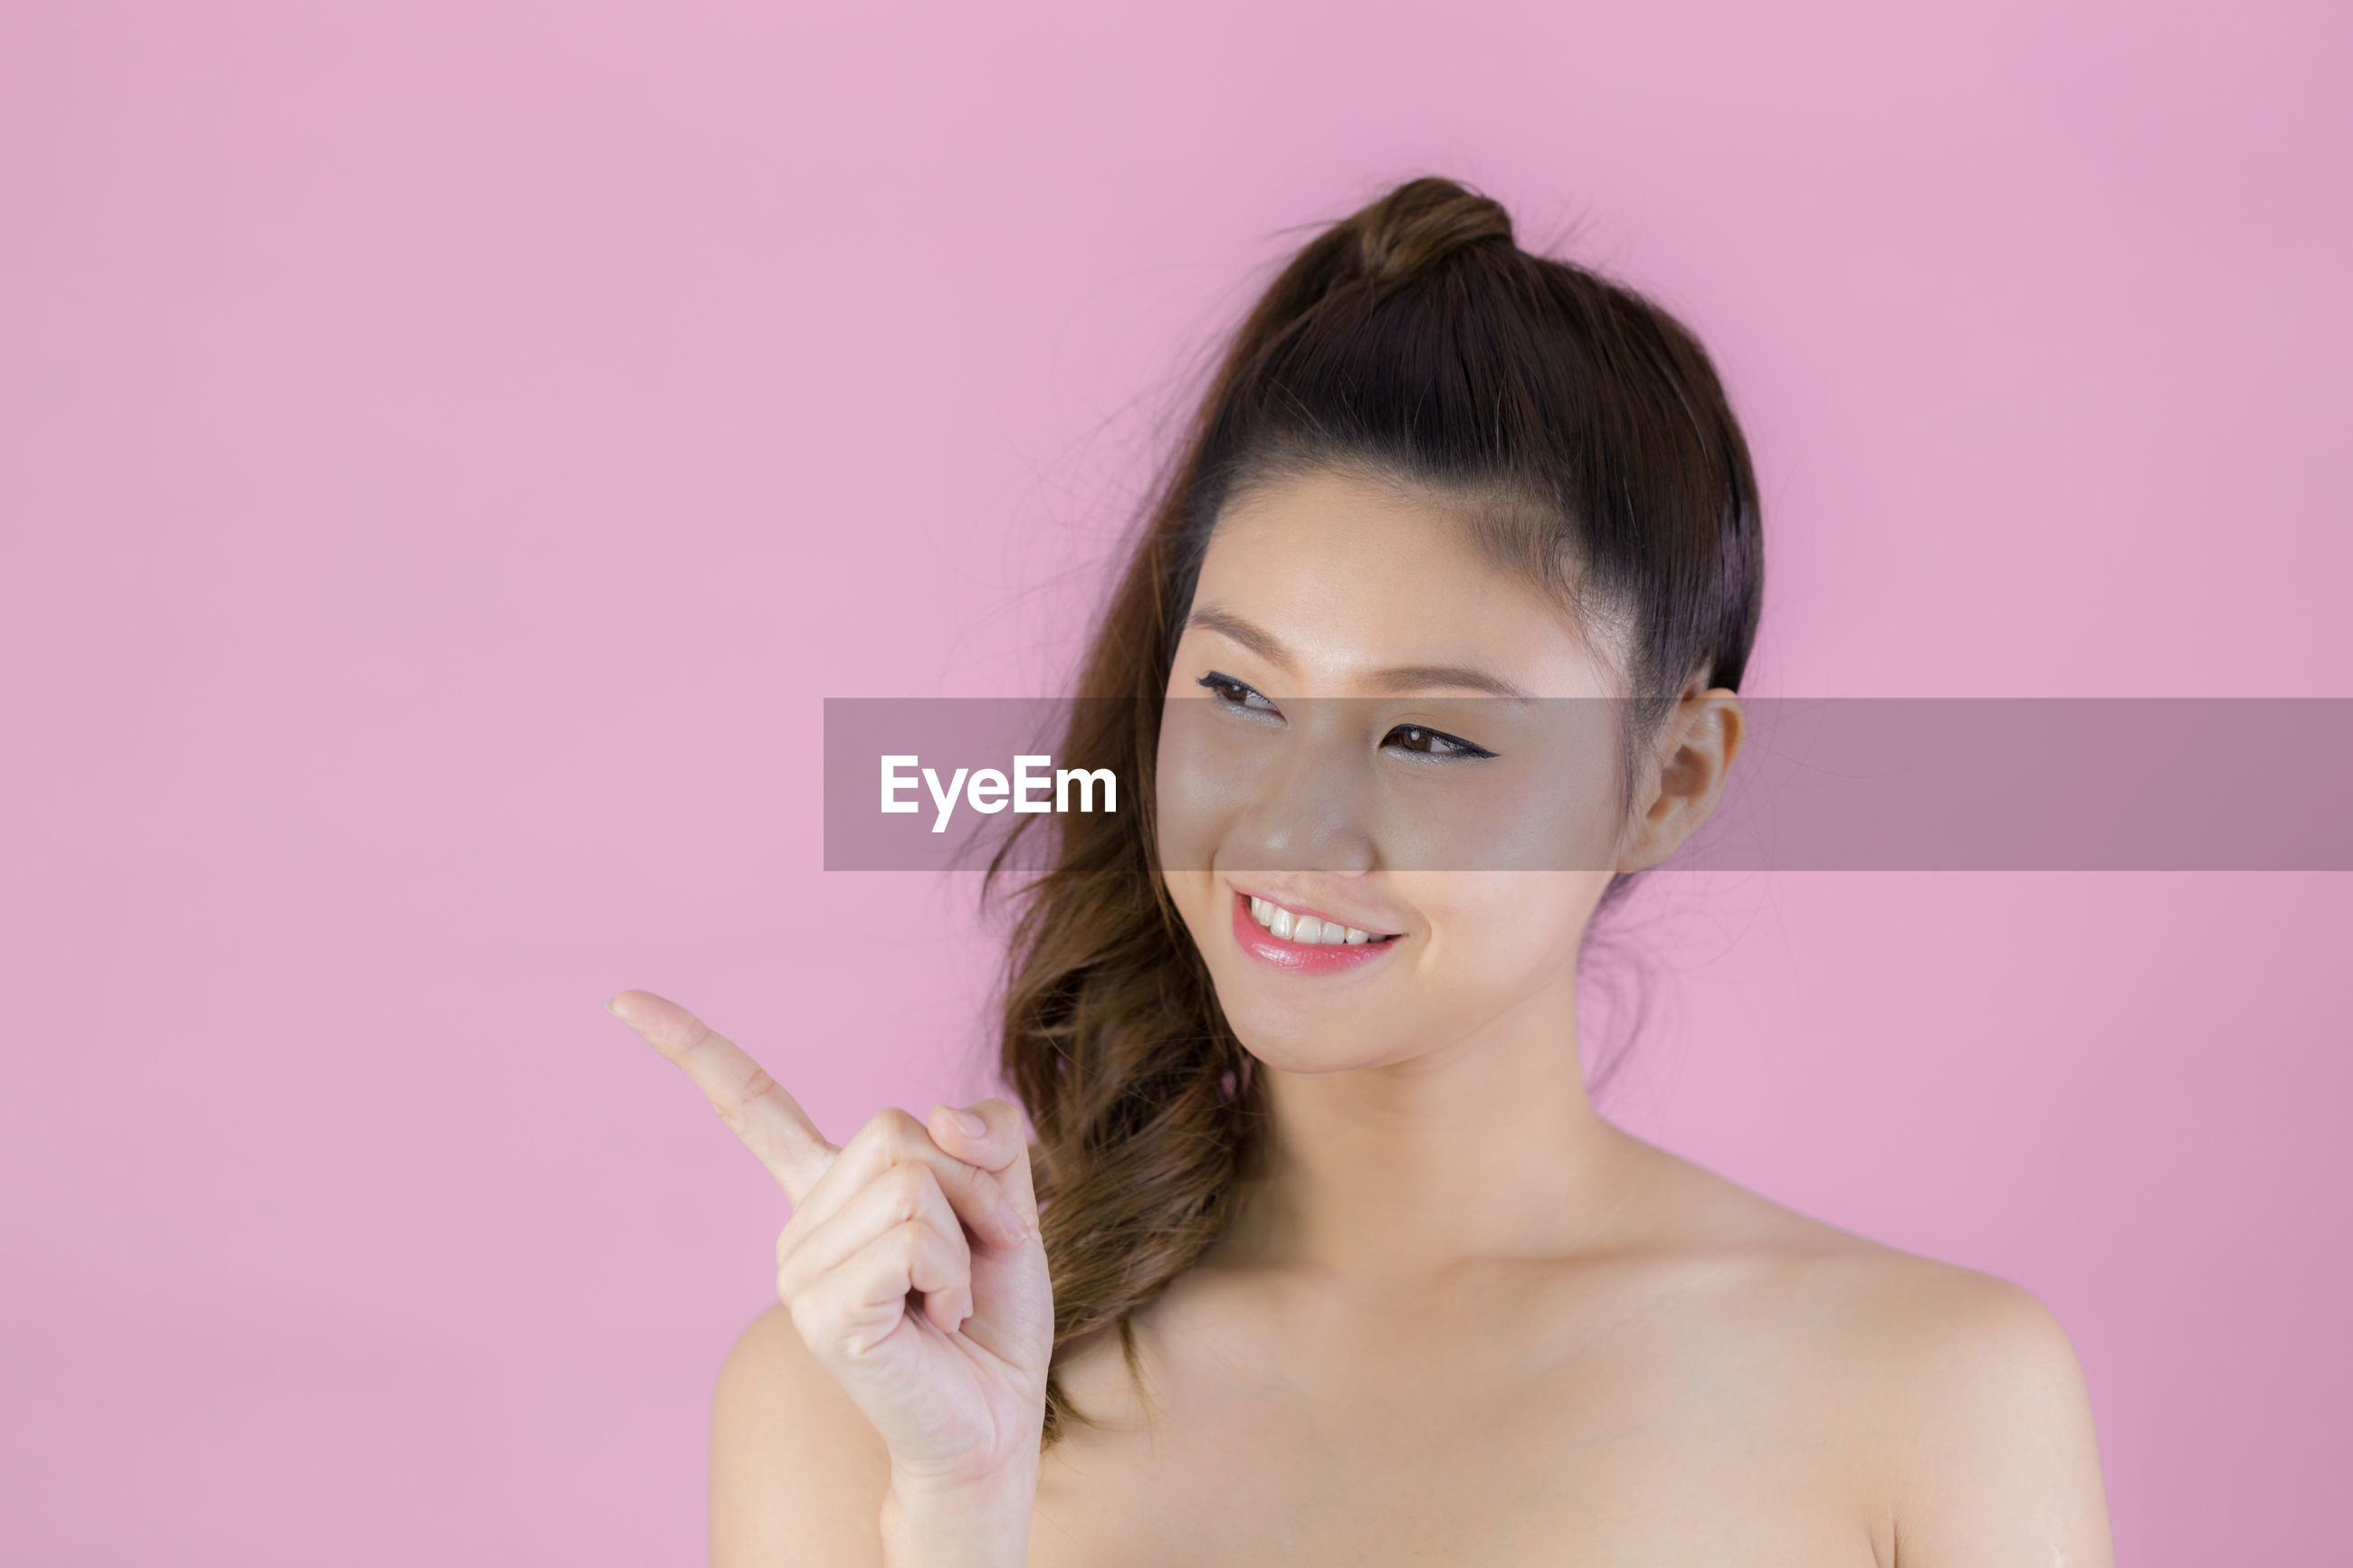 Smiling shirtless woman pointing against pink background